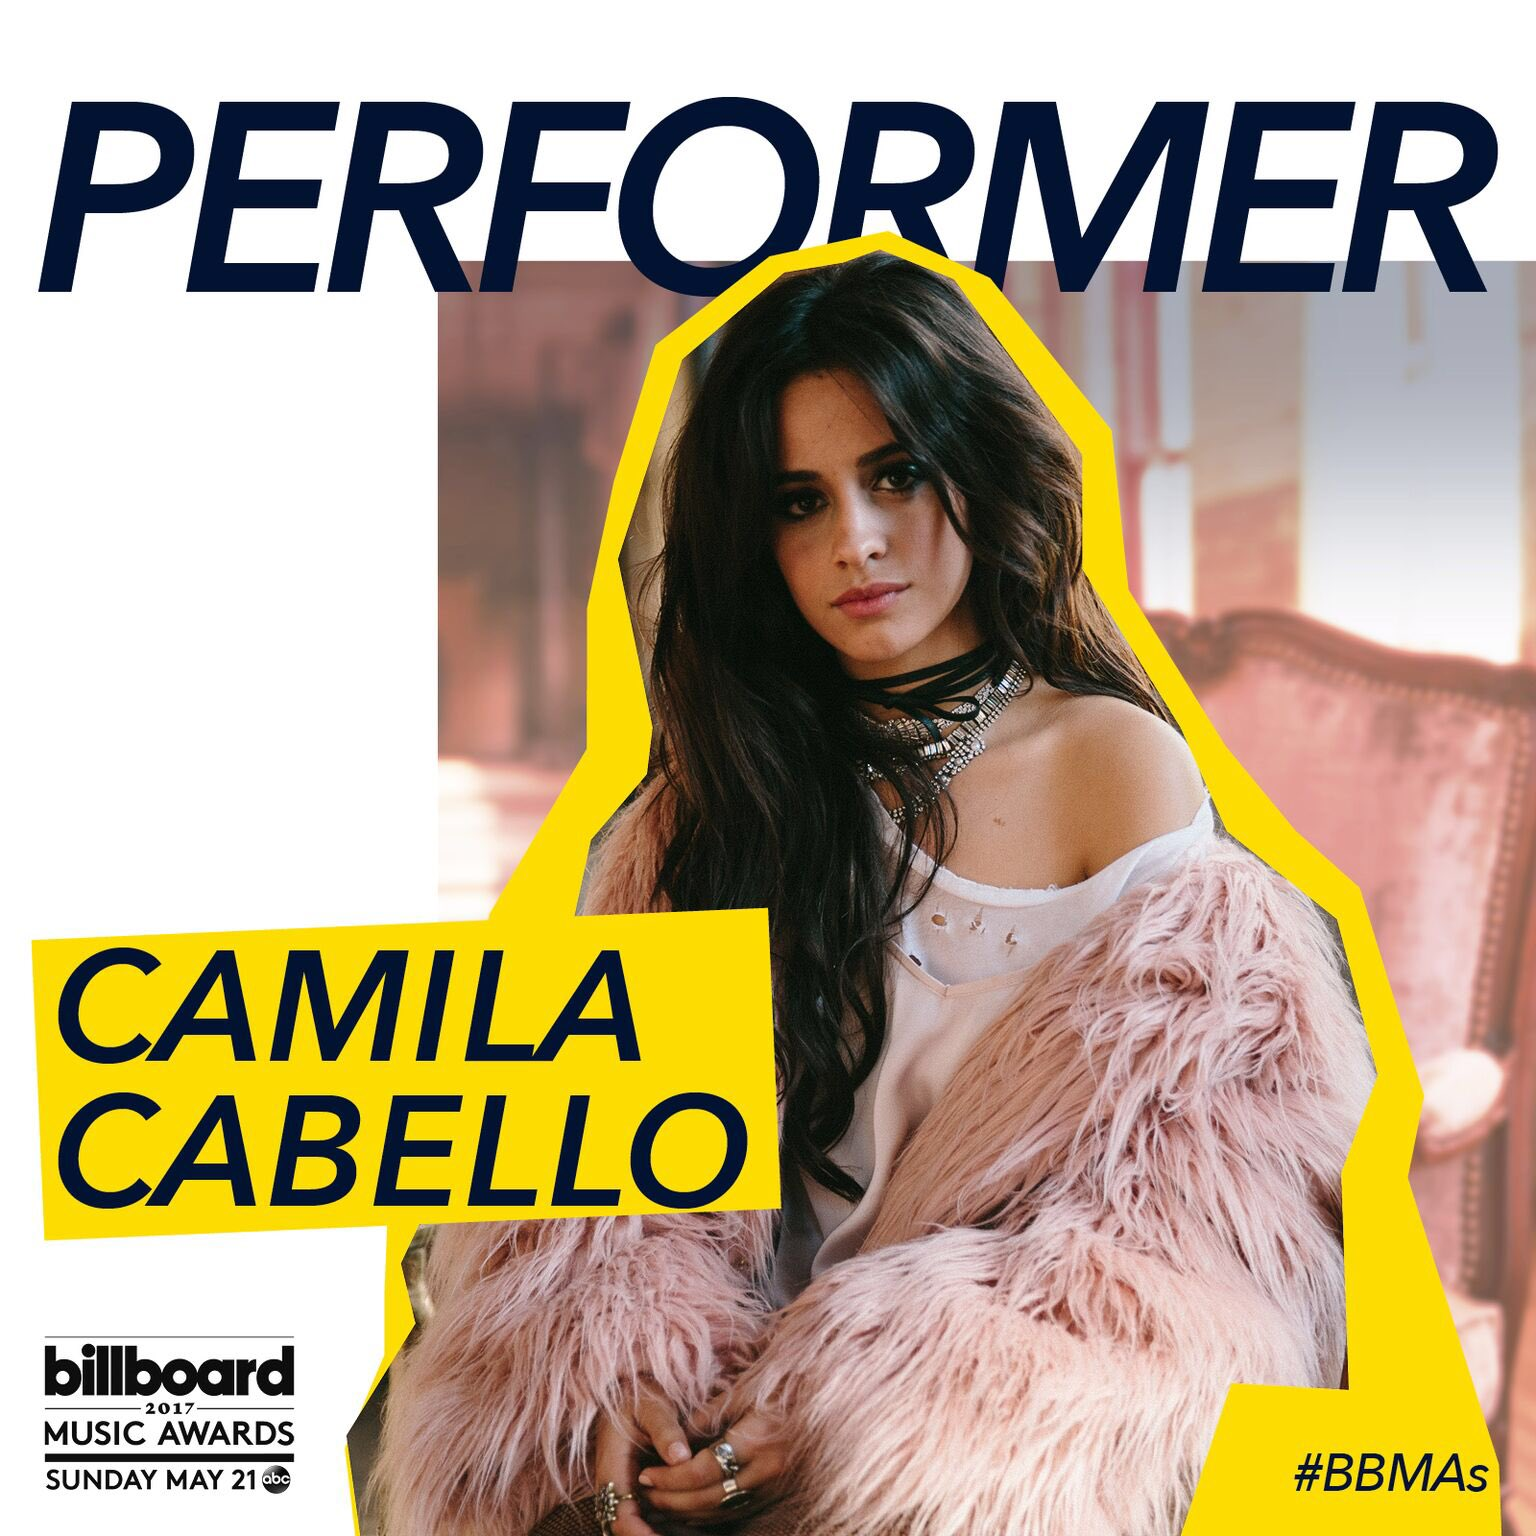 Our girl @camila_cabello is performing at the @bbmas on 5/21! You don't want to miss it ���� #BBMAs https://t.co/5PSbEVoWmk